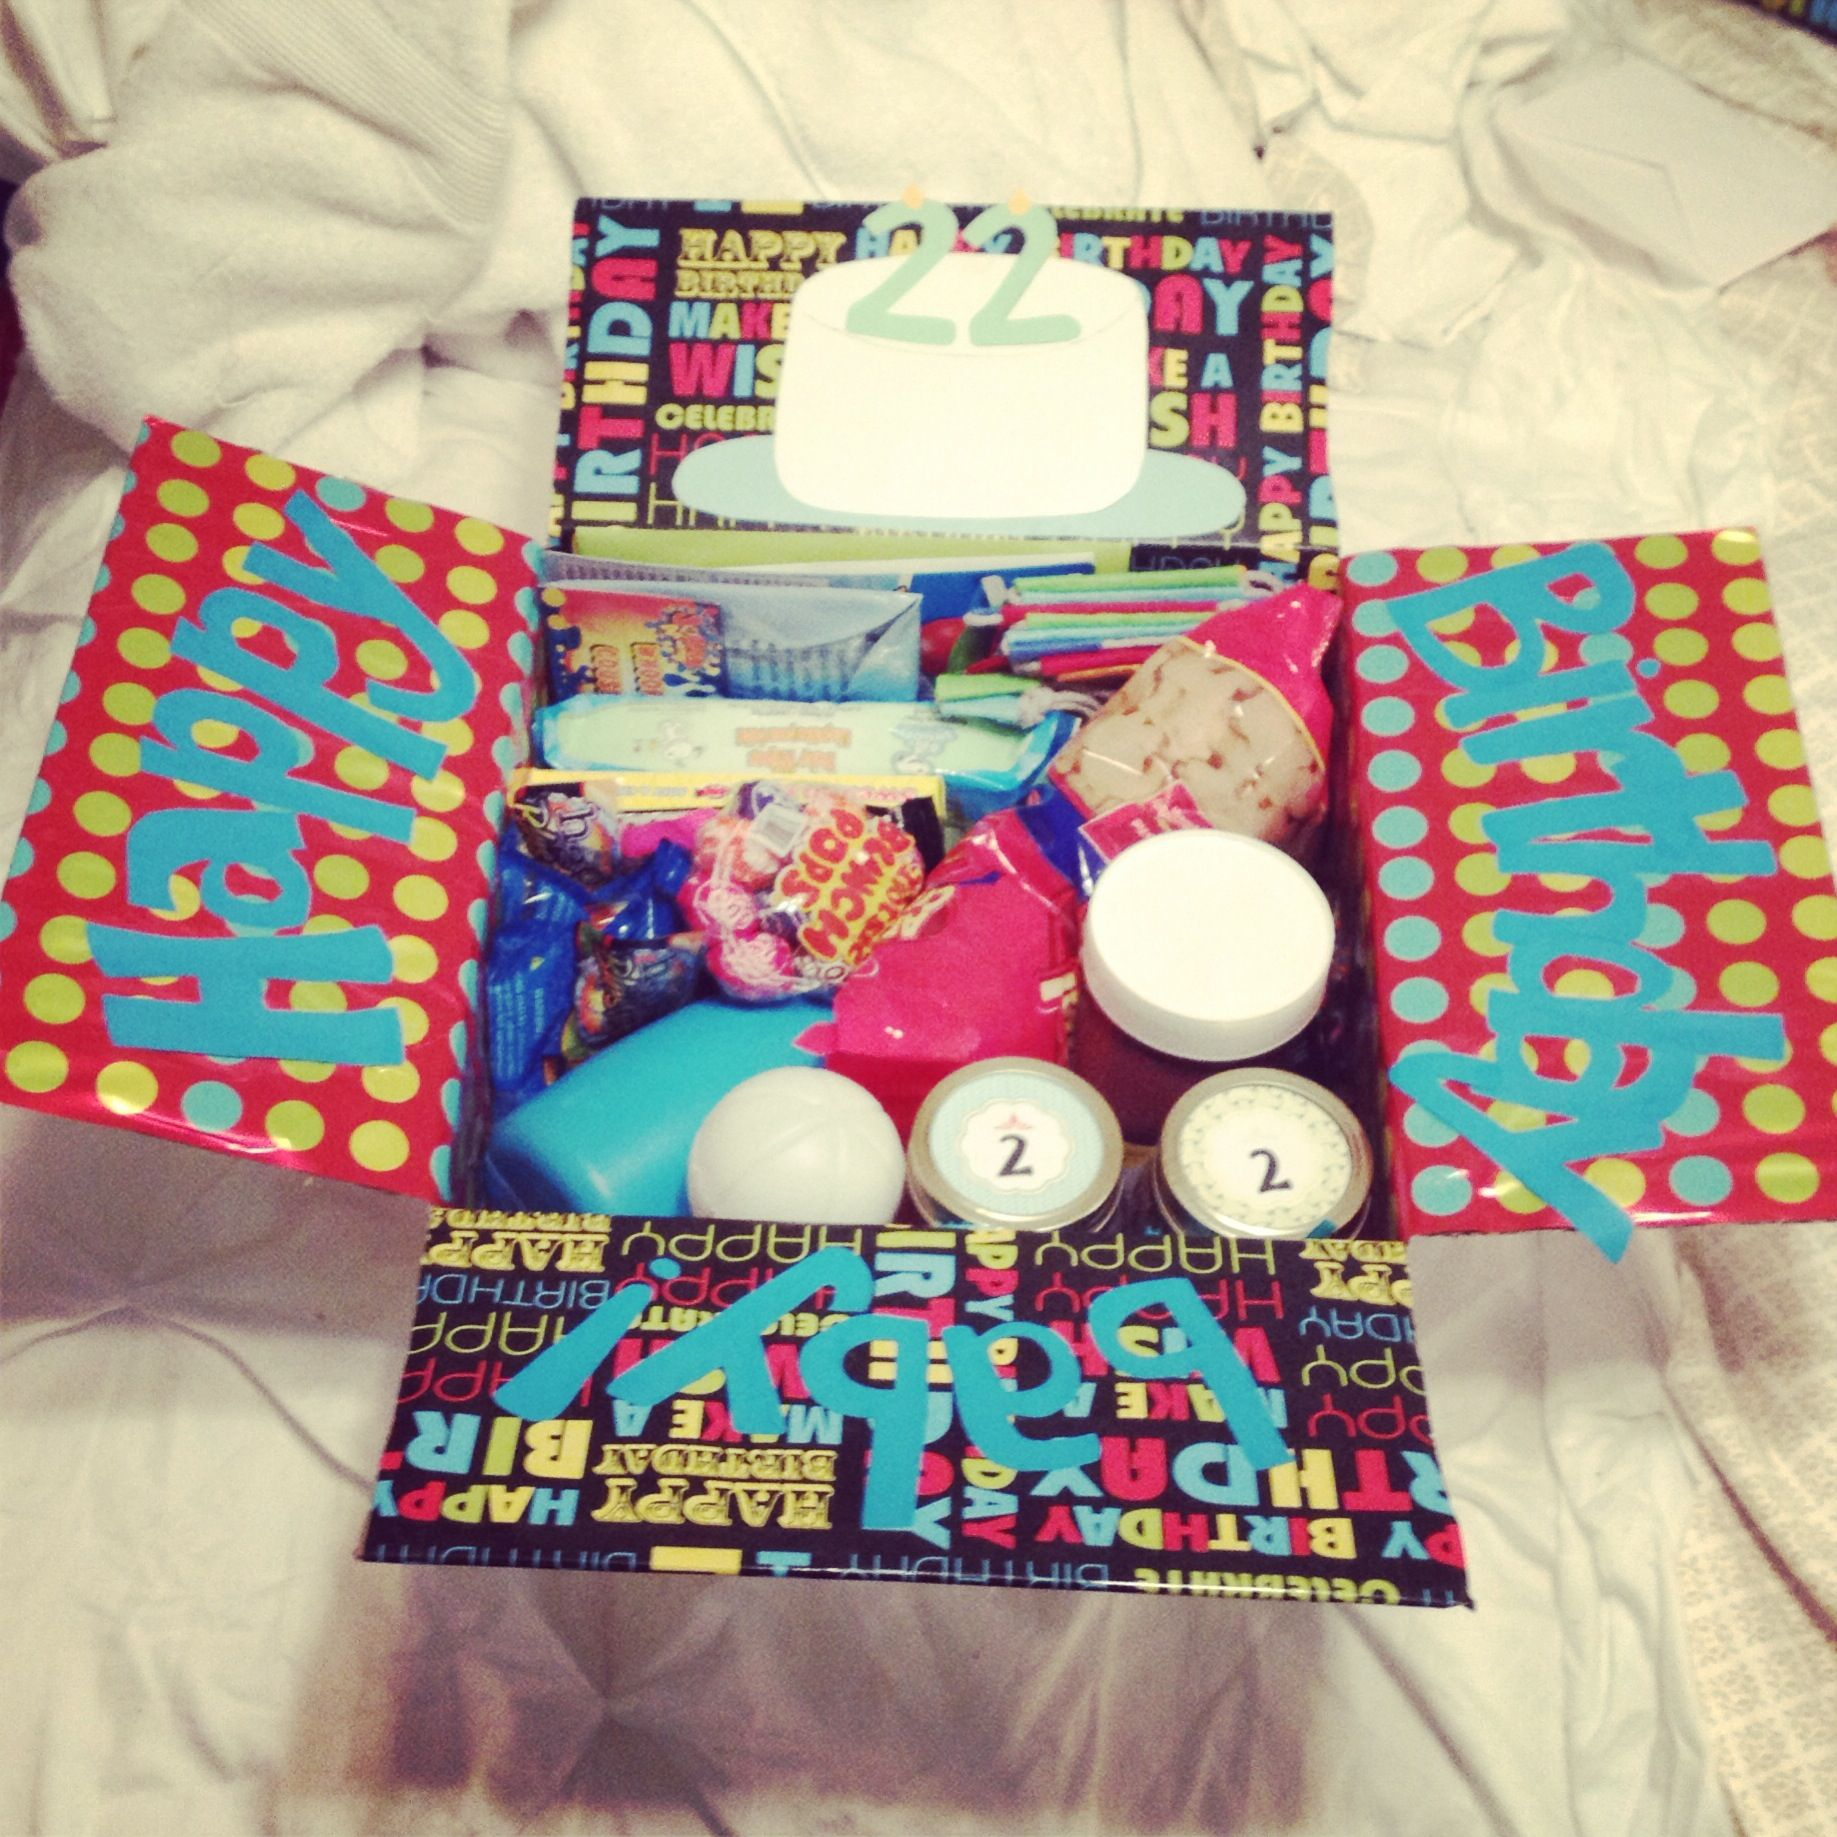 Codys birthday care package hes turning 22 during